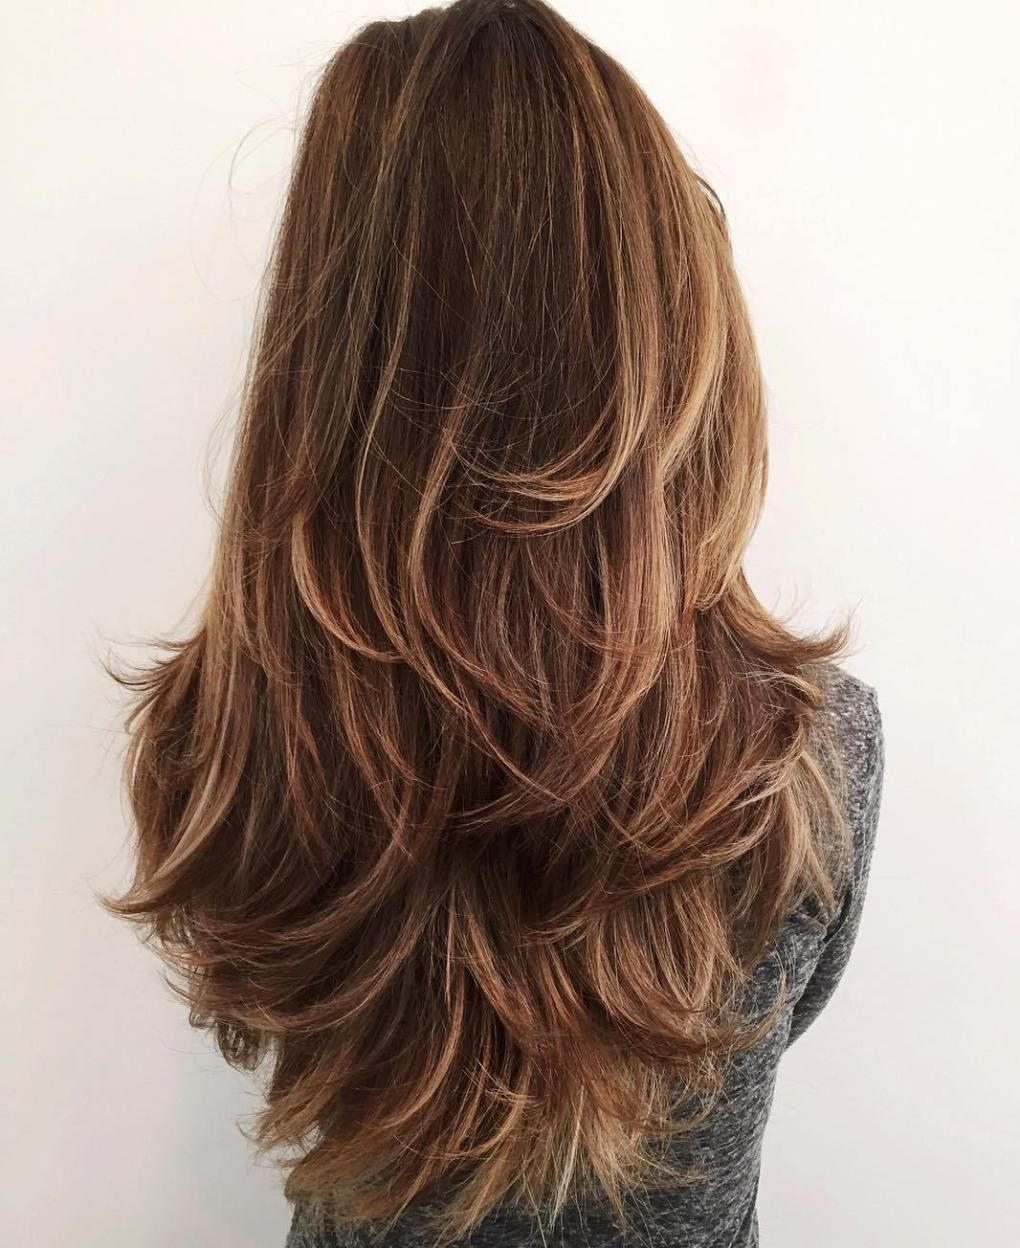 50 lovely long shag haircuts for effortless stylish looks | hair